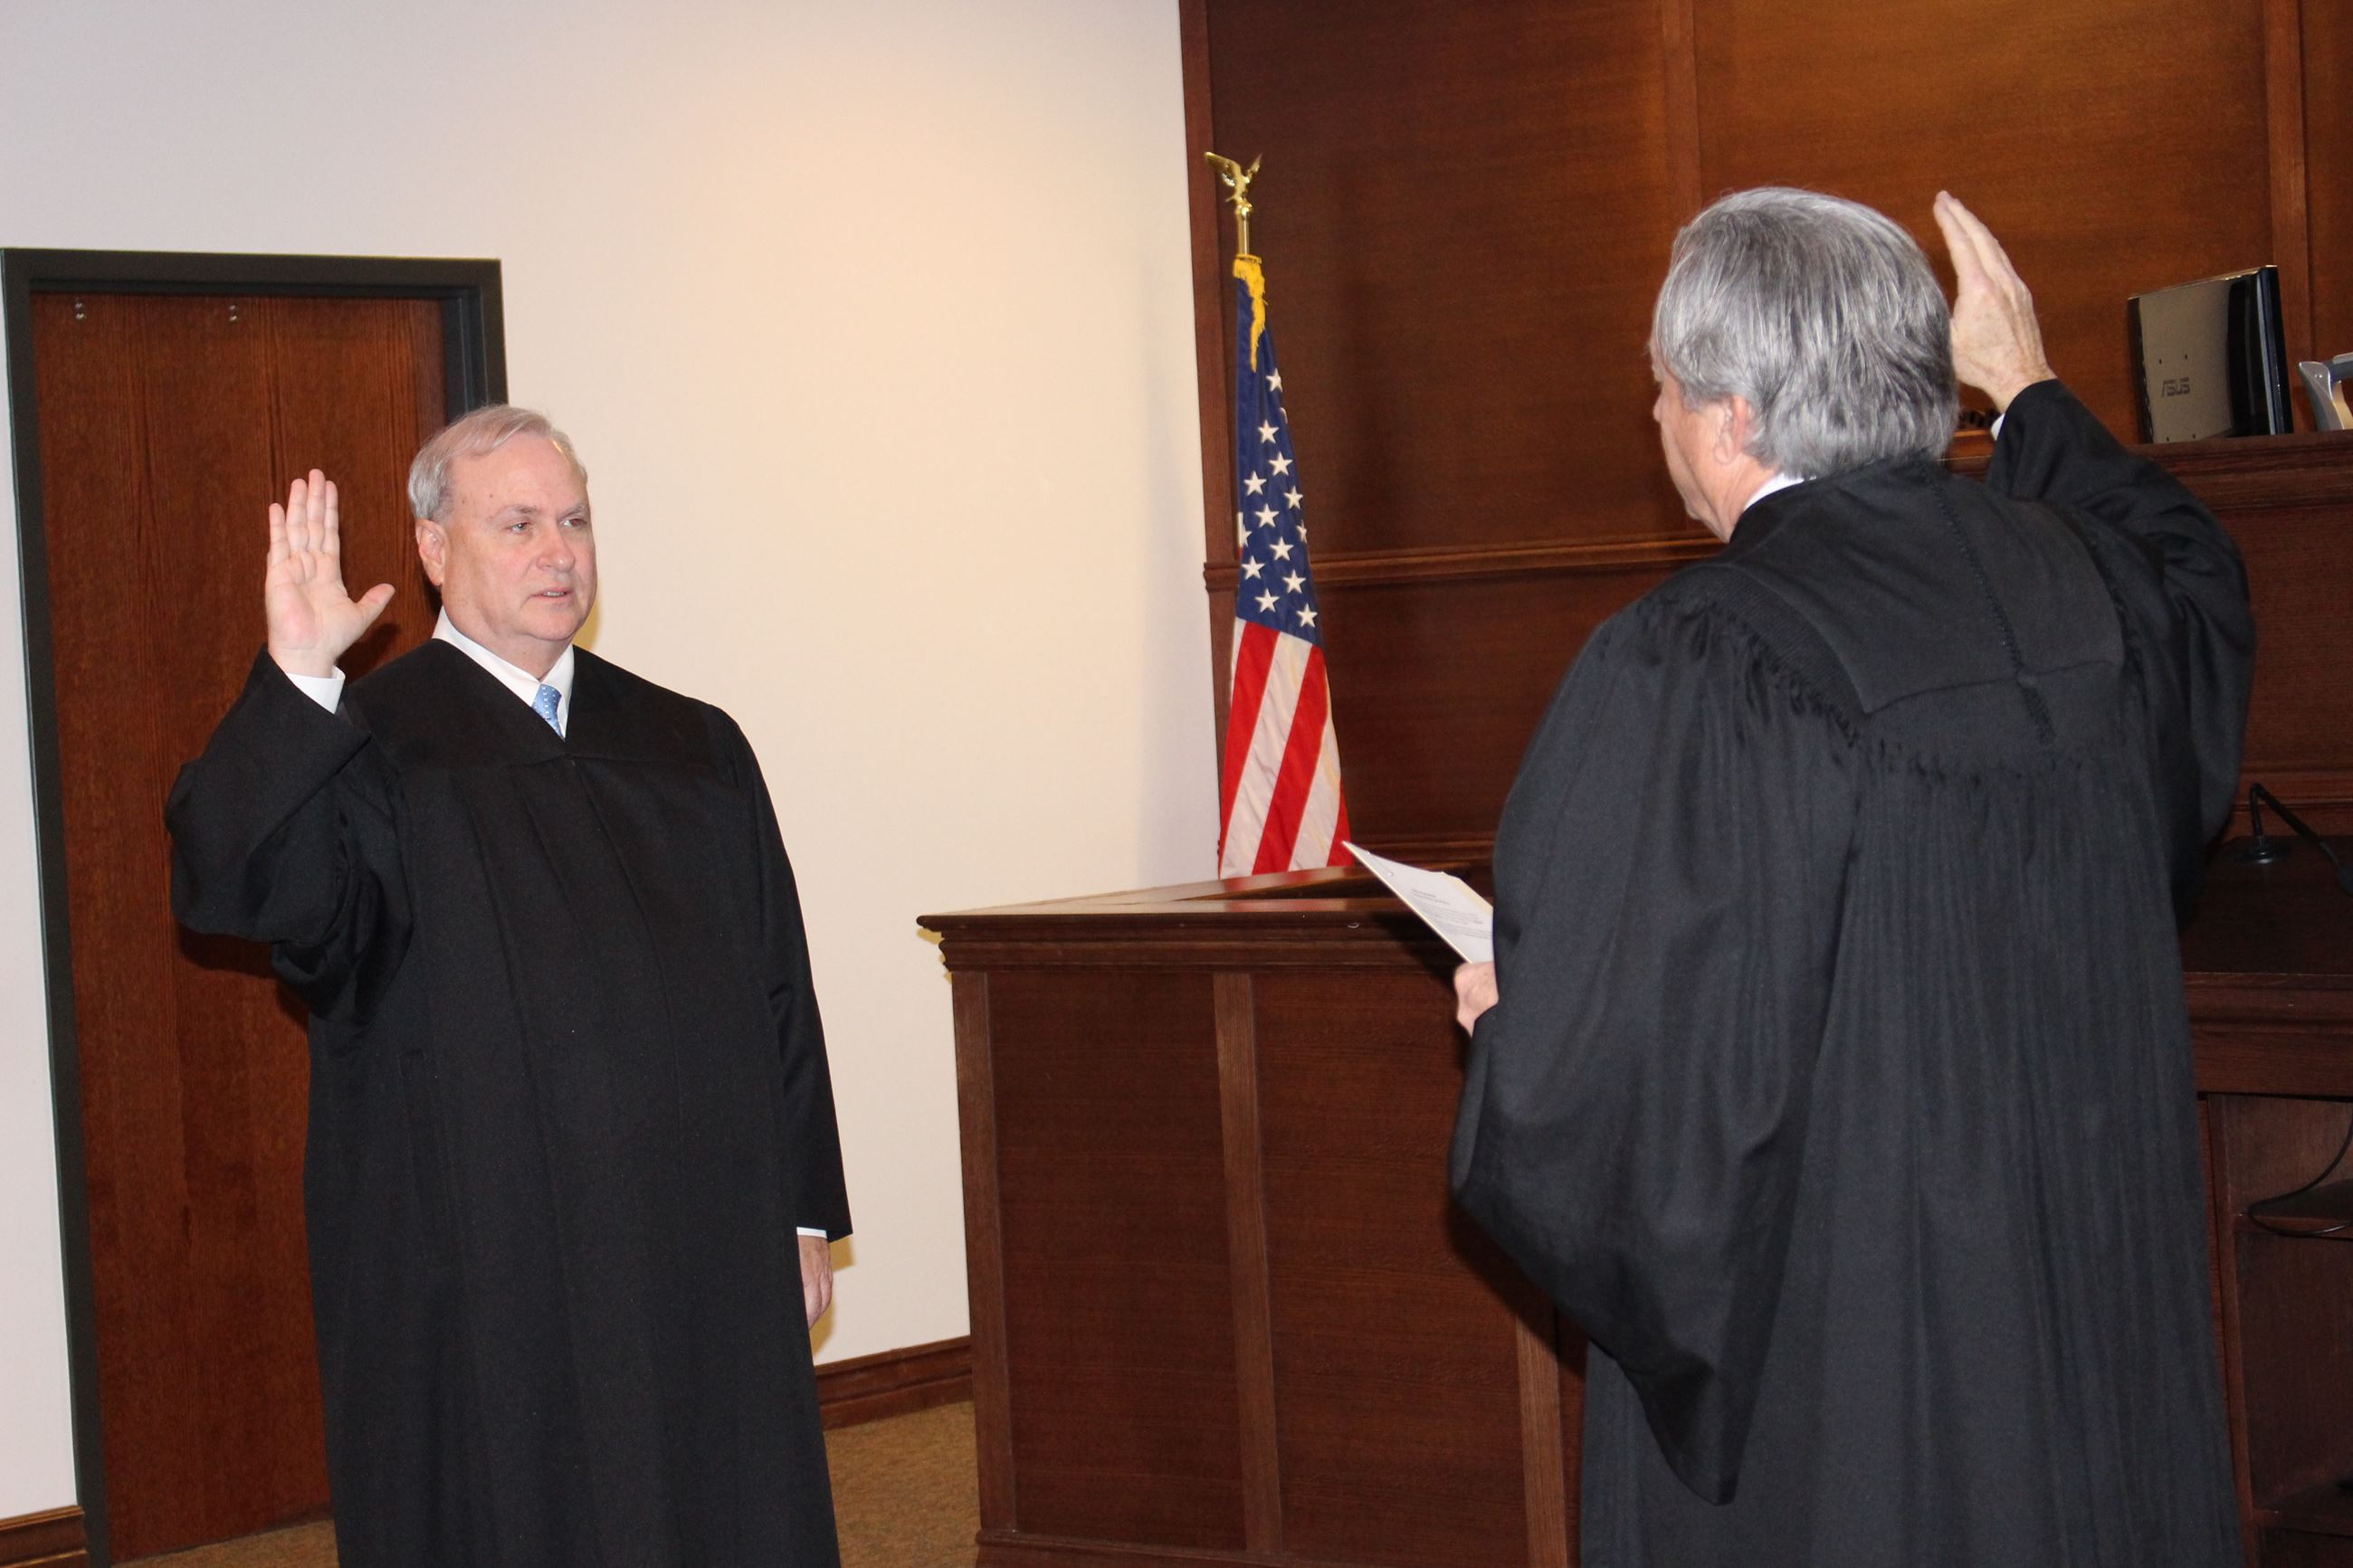 Judge Harper being sworn in by Judge Gladwin, 1-2-2017